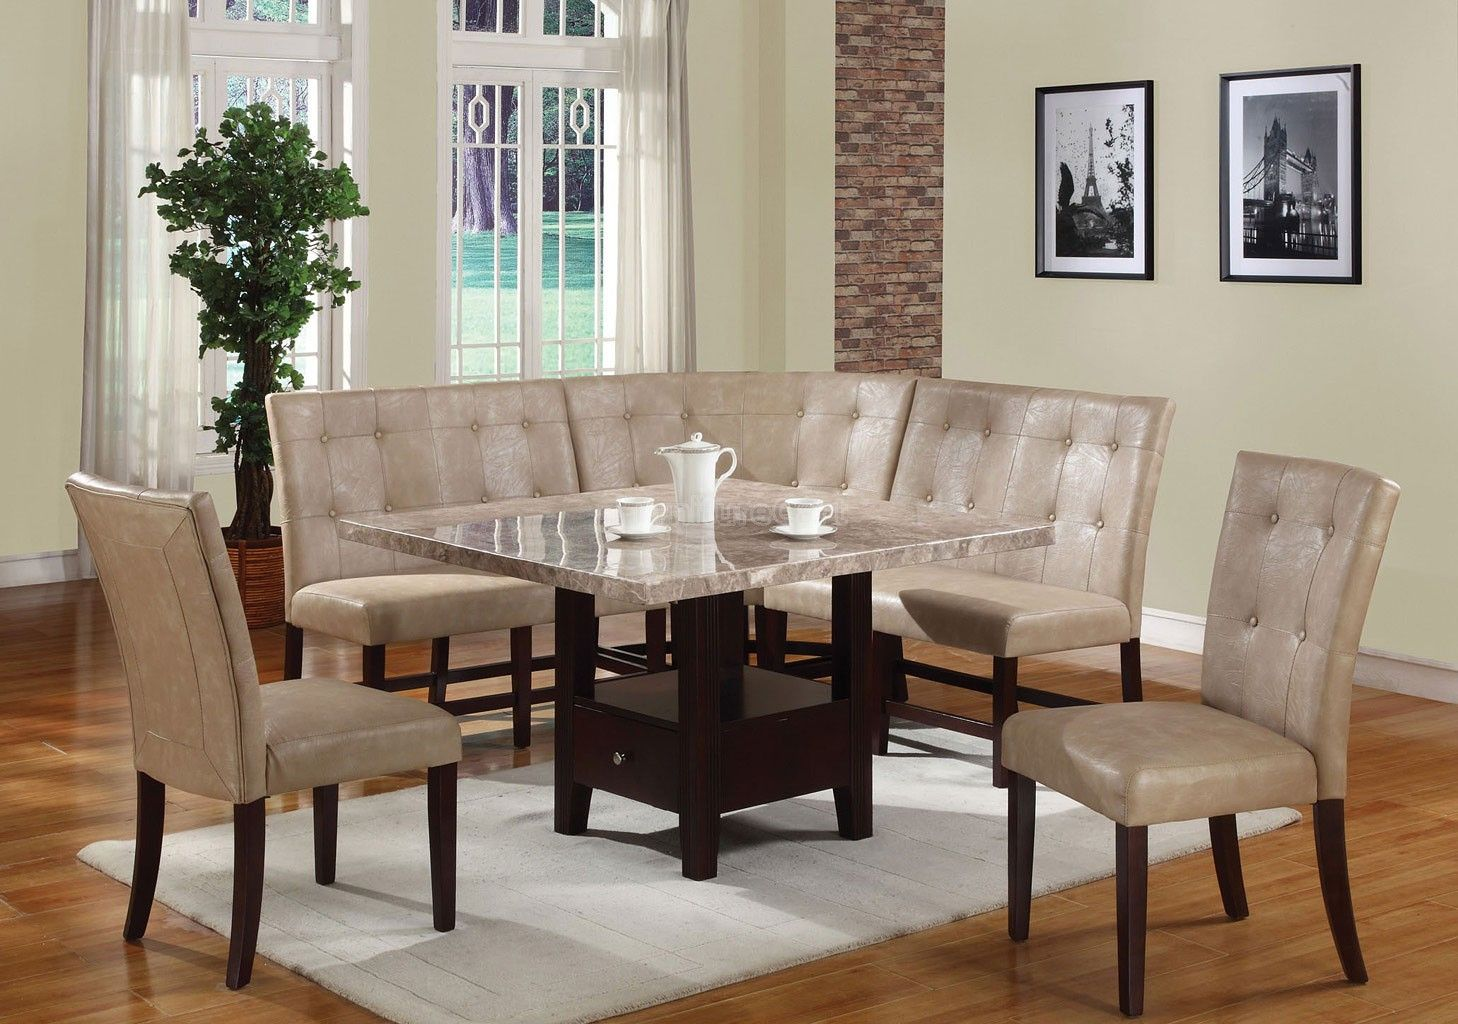 Britney Storage Dining Room Set w/ Cream Chairs images